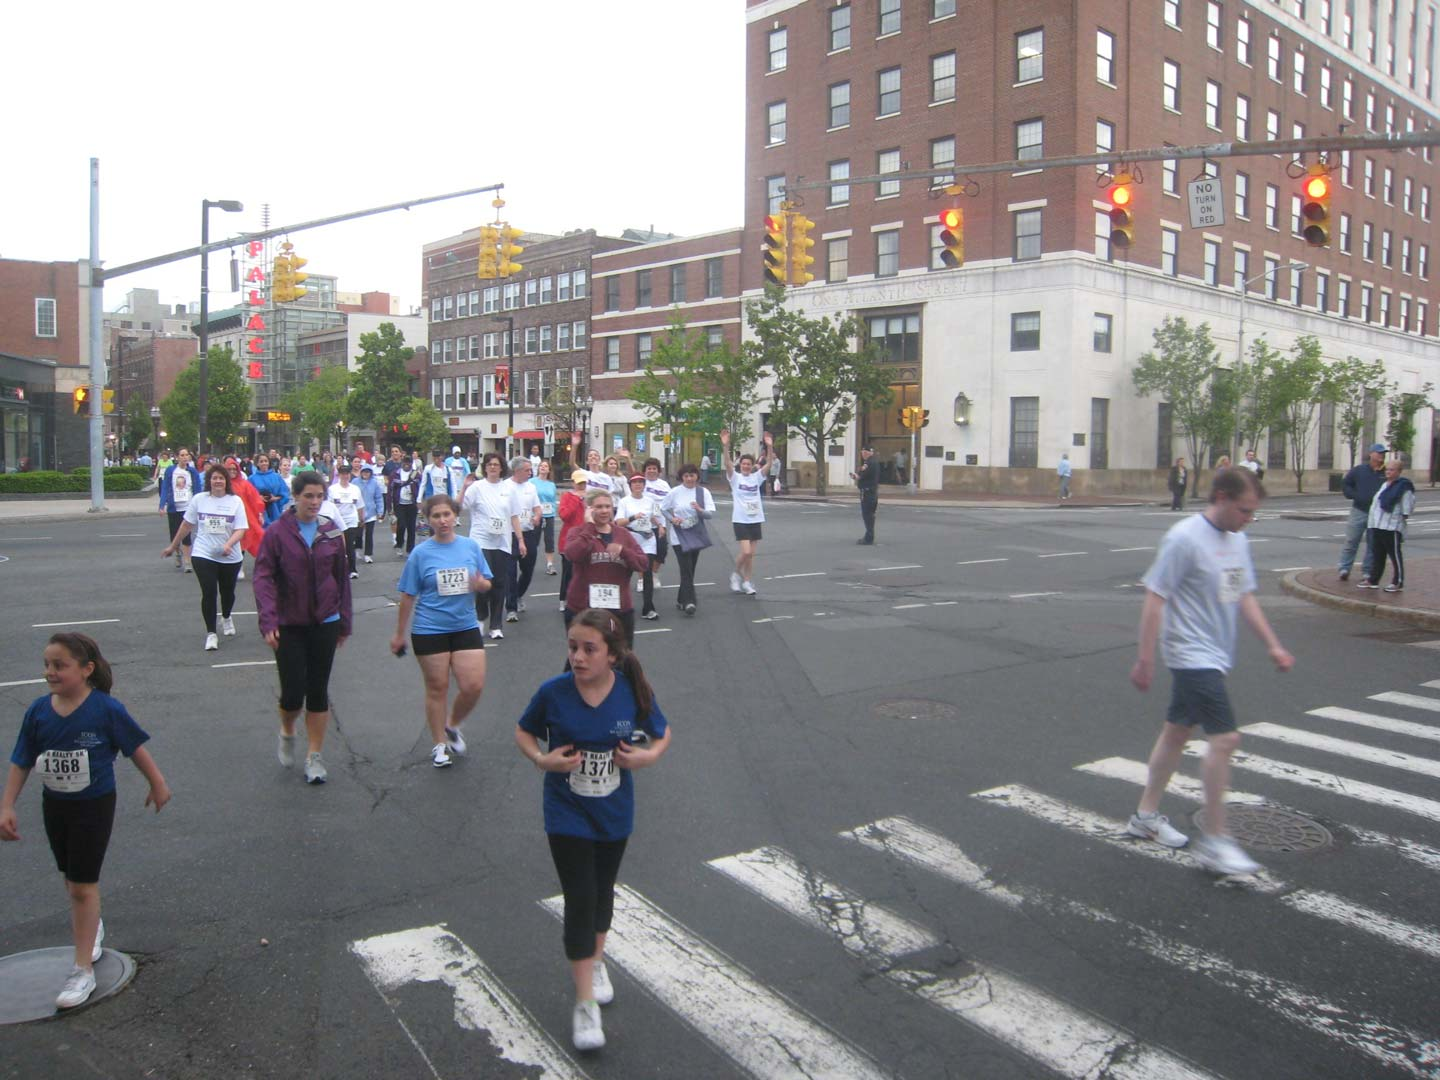 Running for charity